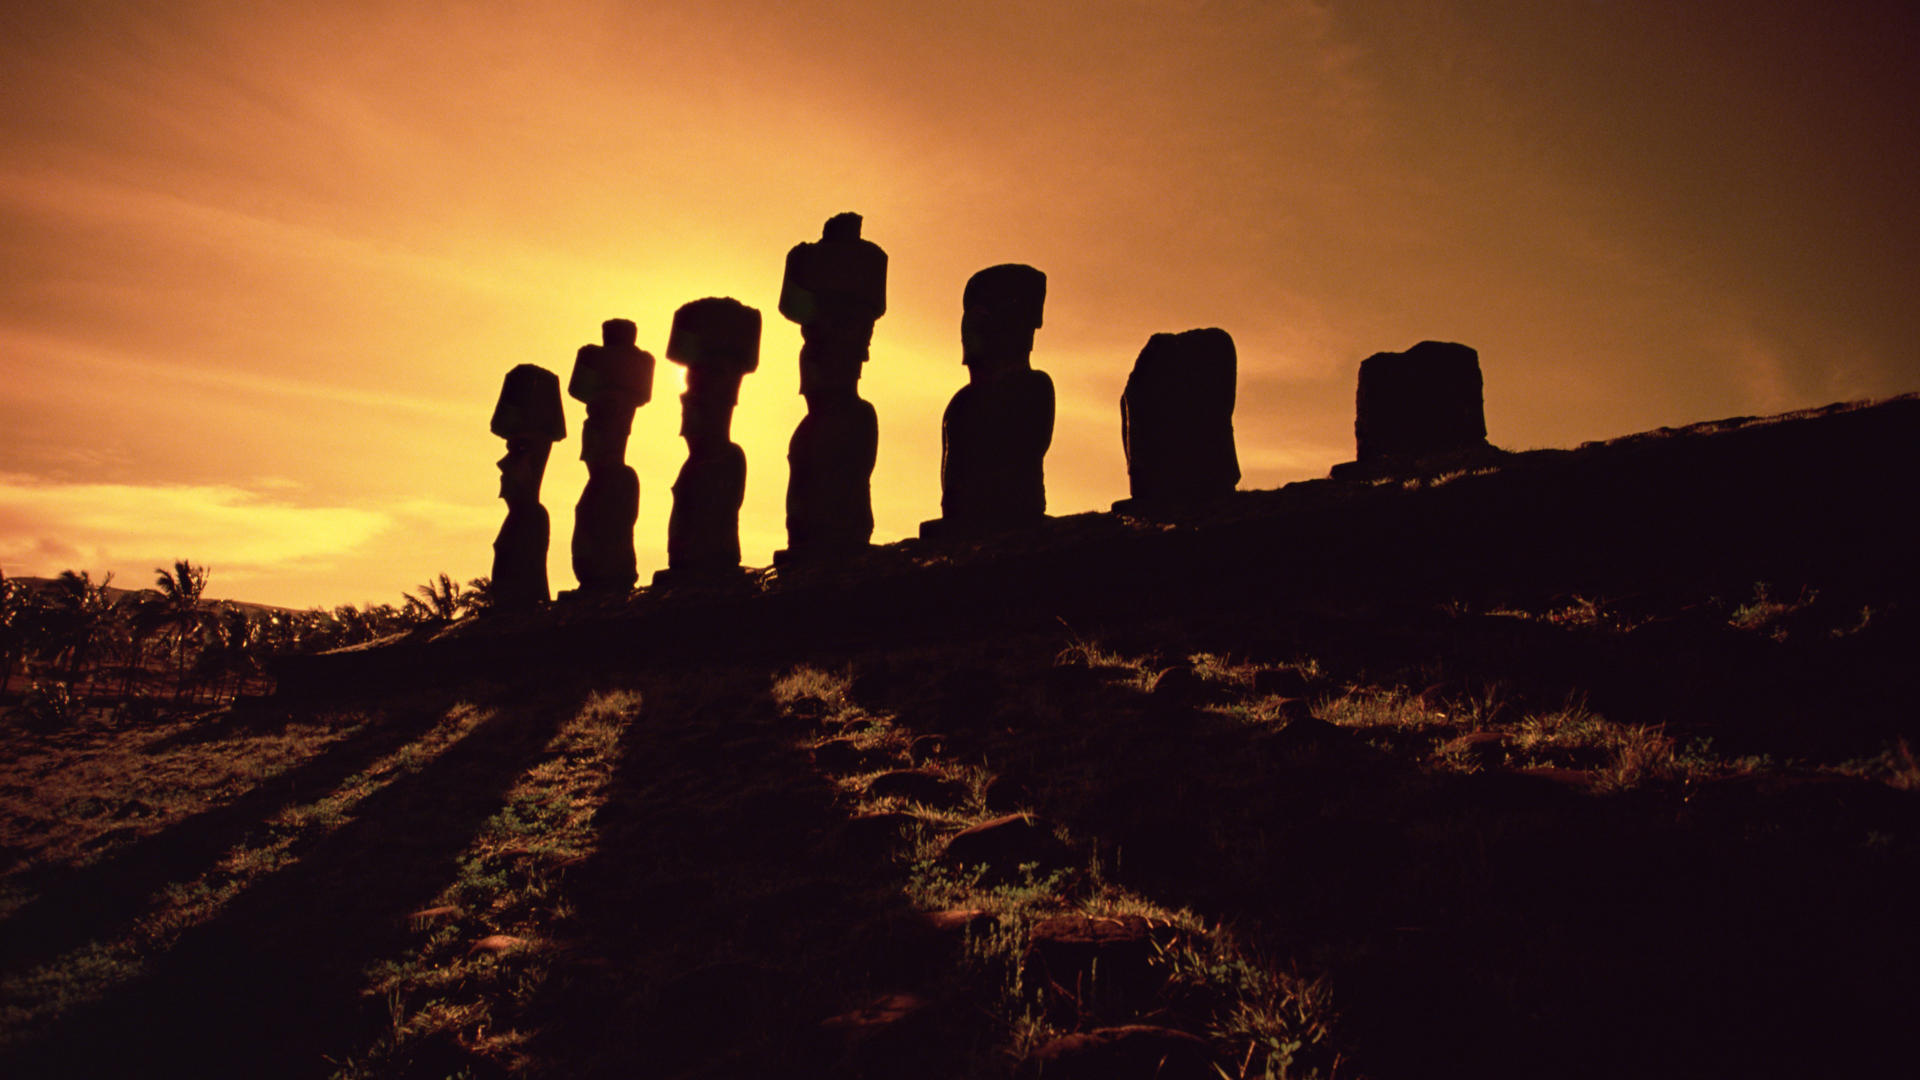 File Name 732467 Amazing Easter Island Pictures Background by Lorcan 1920x1080